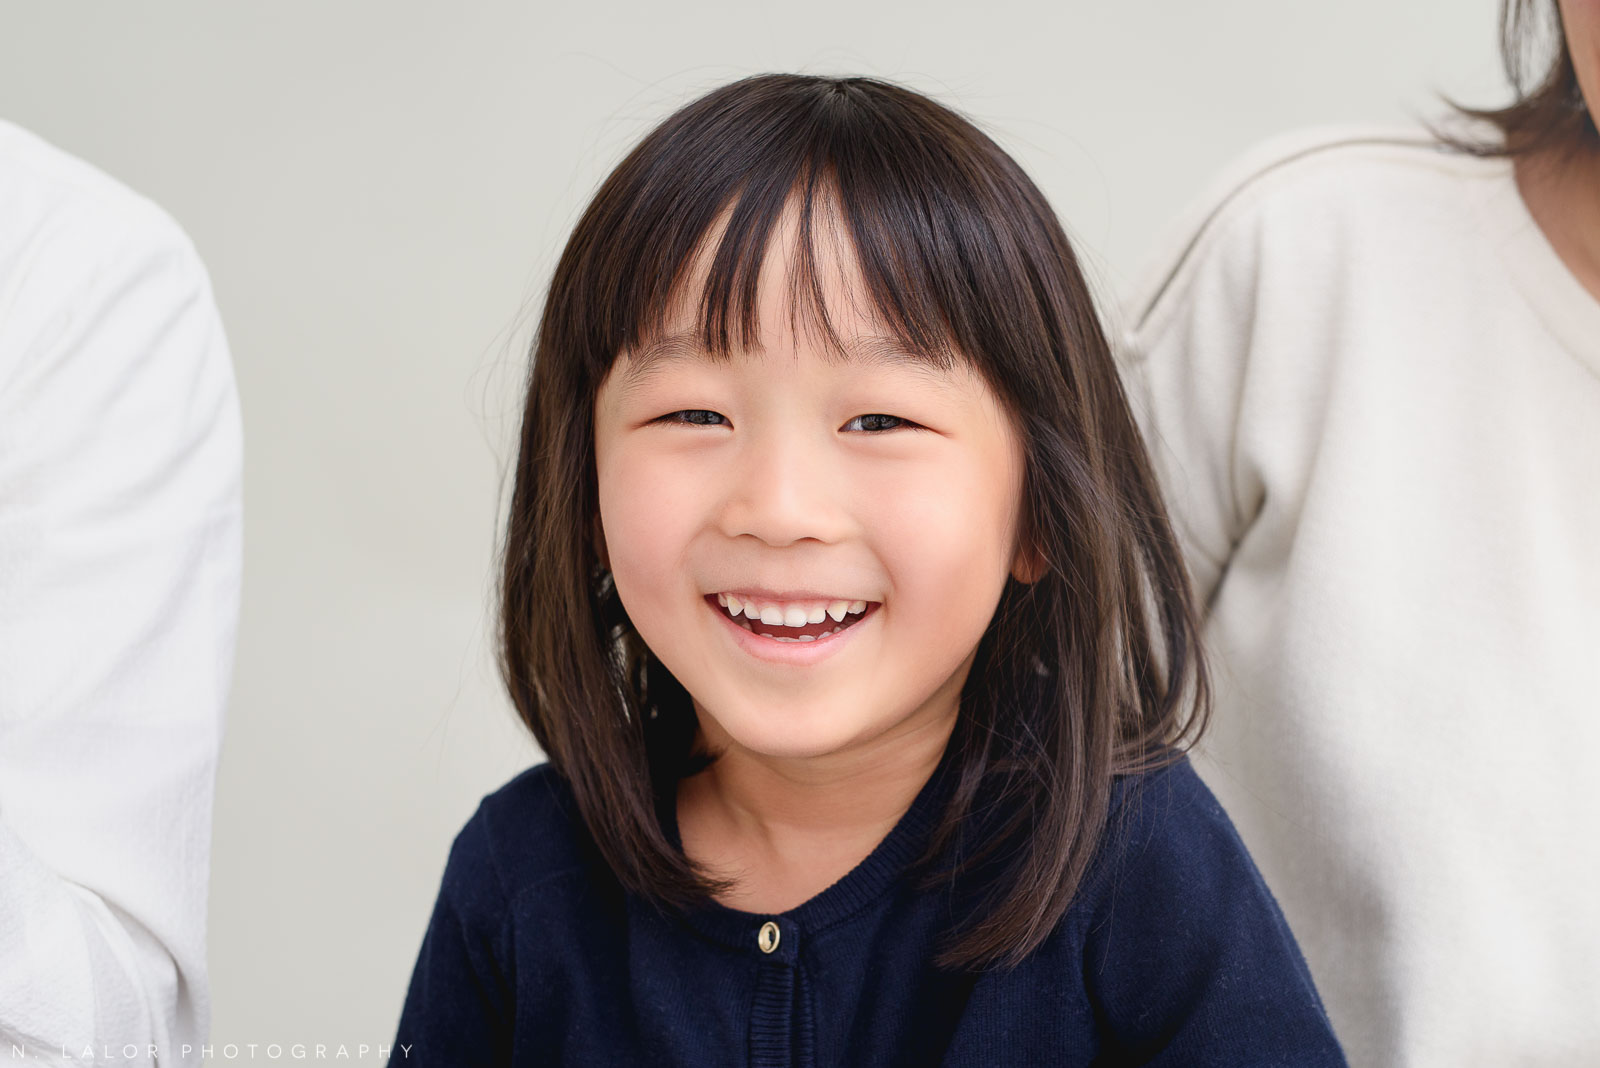 5-year old smiling girl. Greenwich CT Photo Studio family session by N. Lalor Photography.